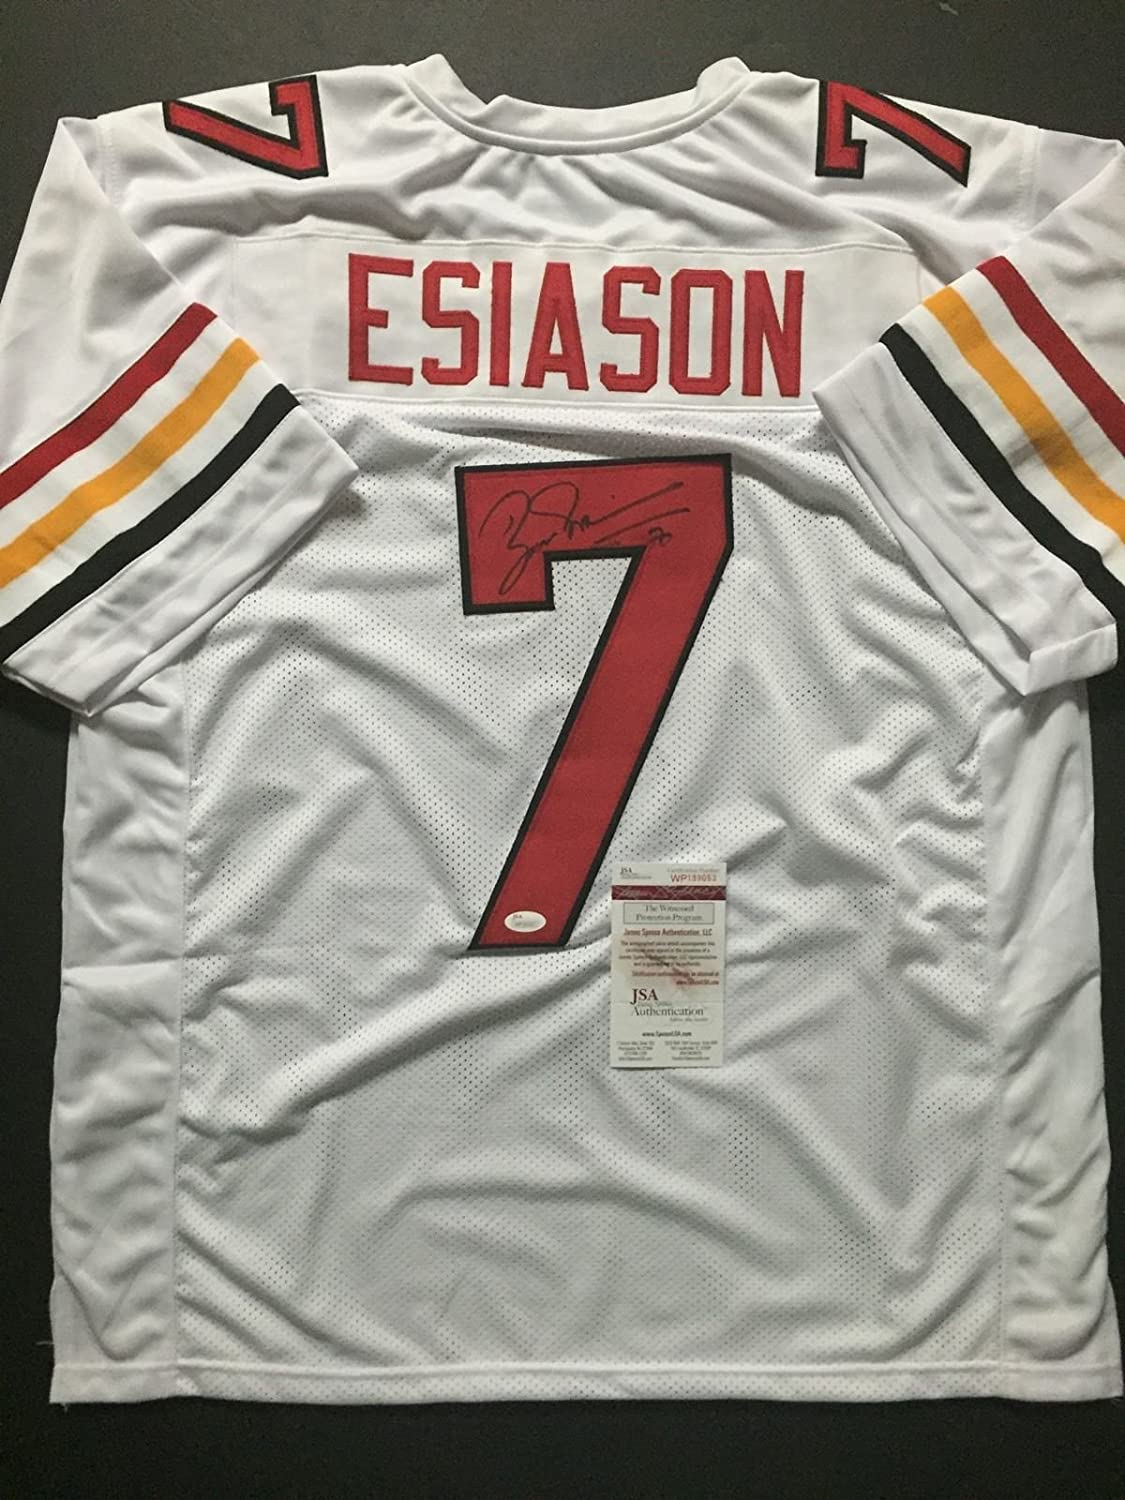 new style e6f38 fcffb Autographed/Signed Boomer Esiason Maryland White College ...